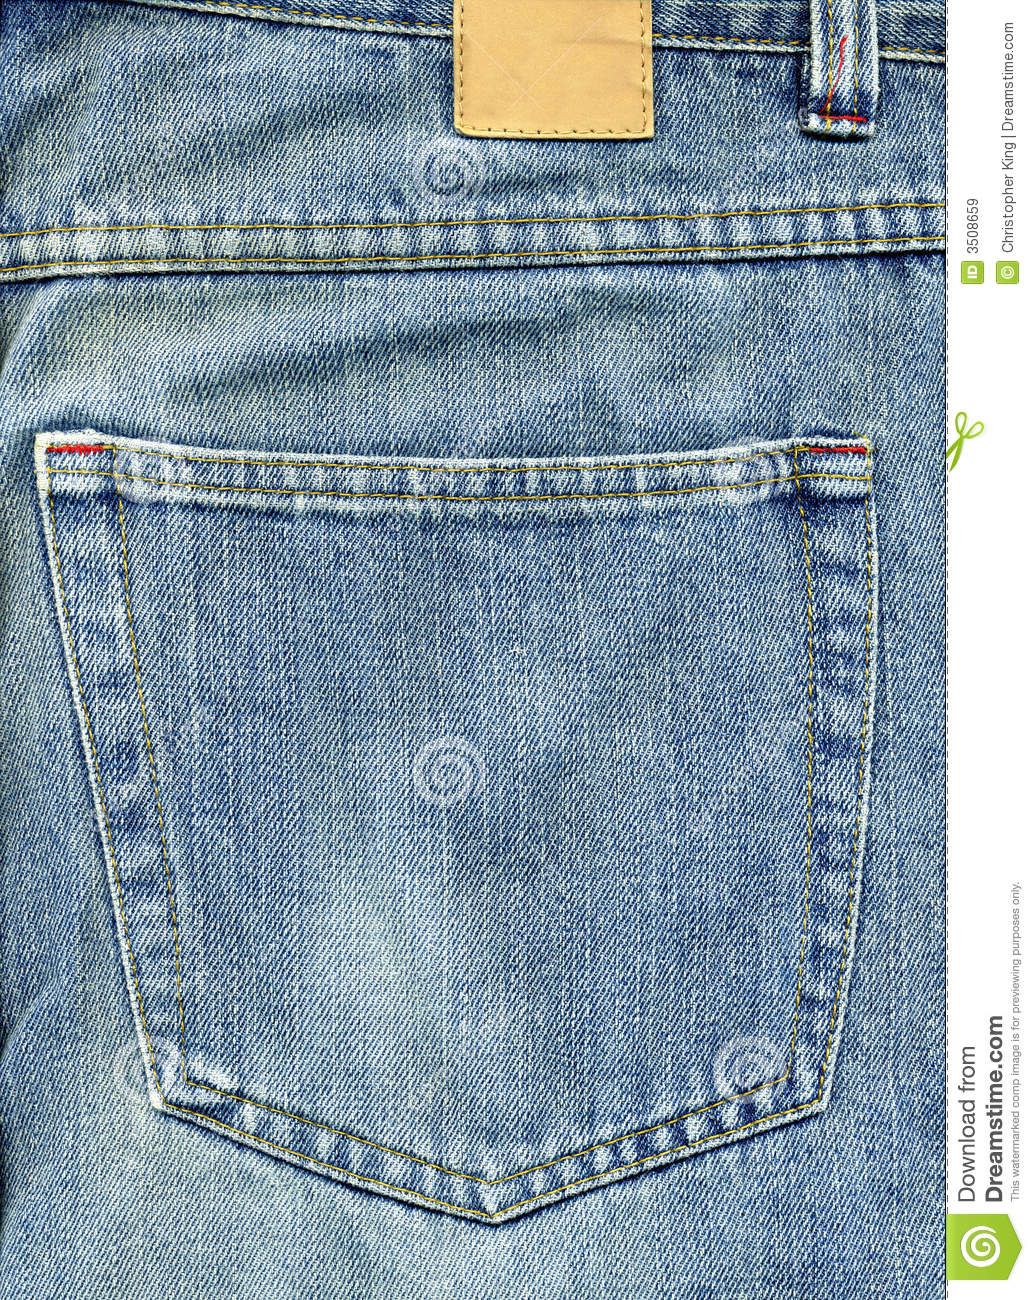 Jeans Back Pocket With Patch Stock Image - Image 3508659